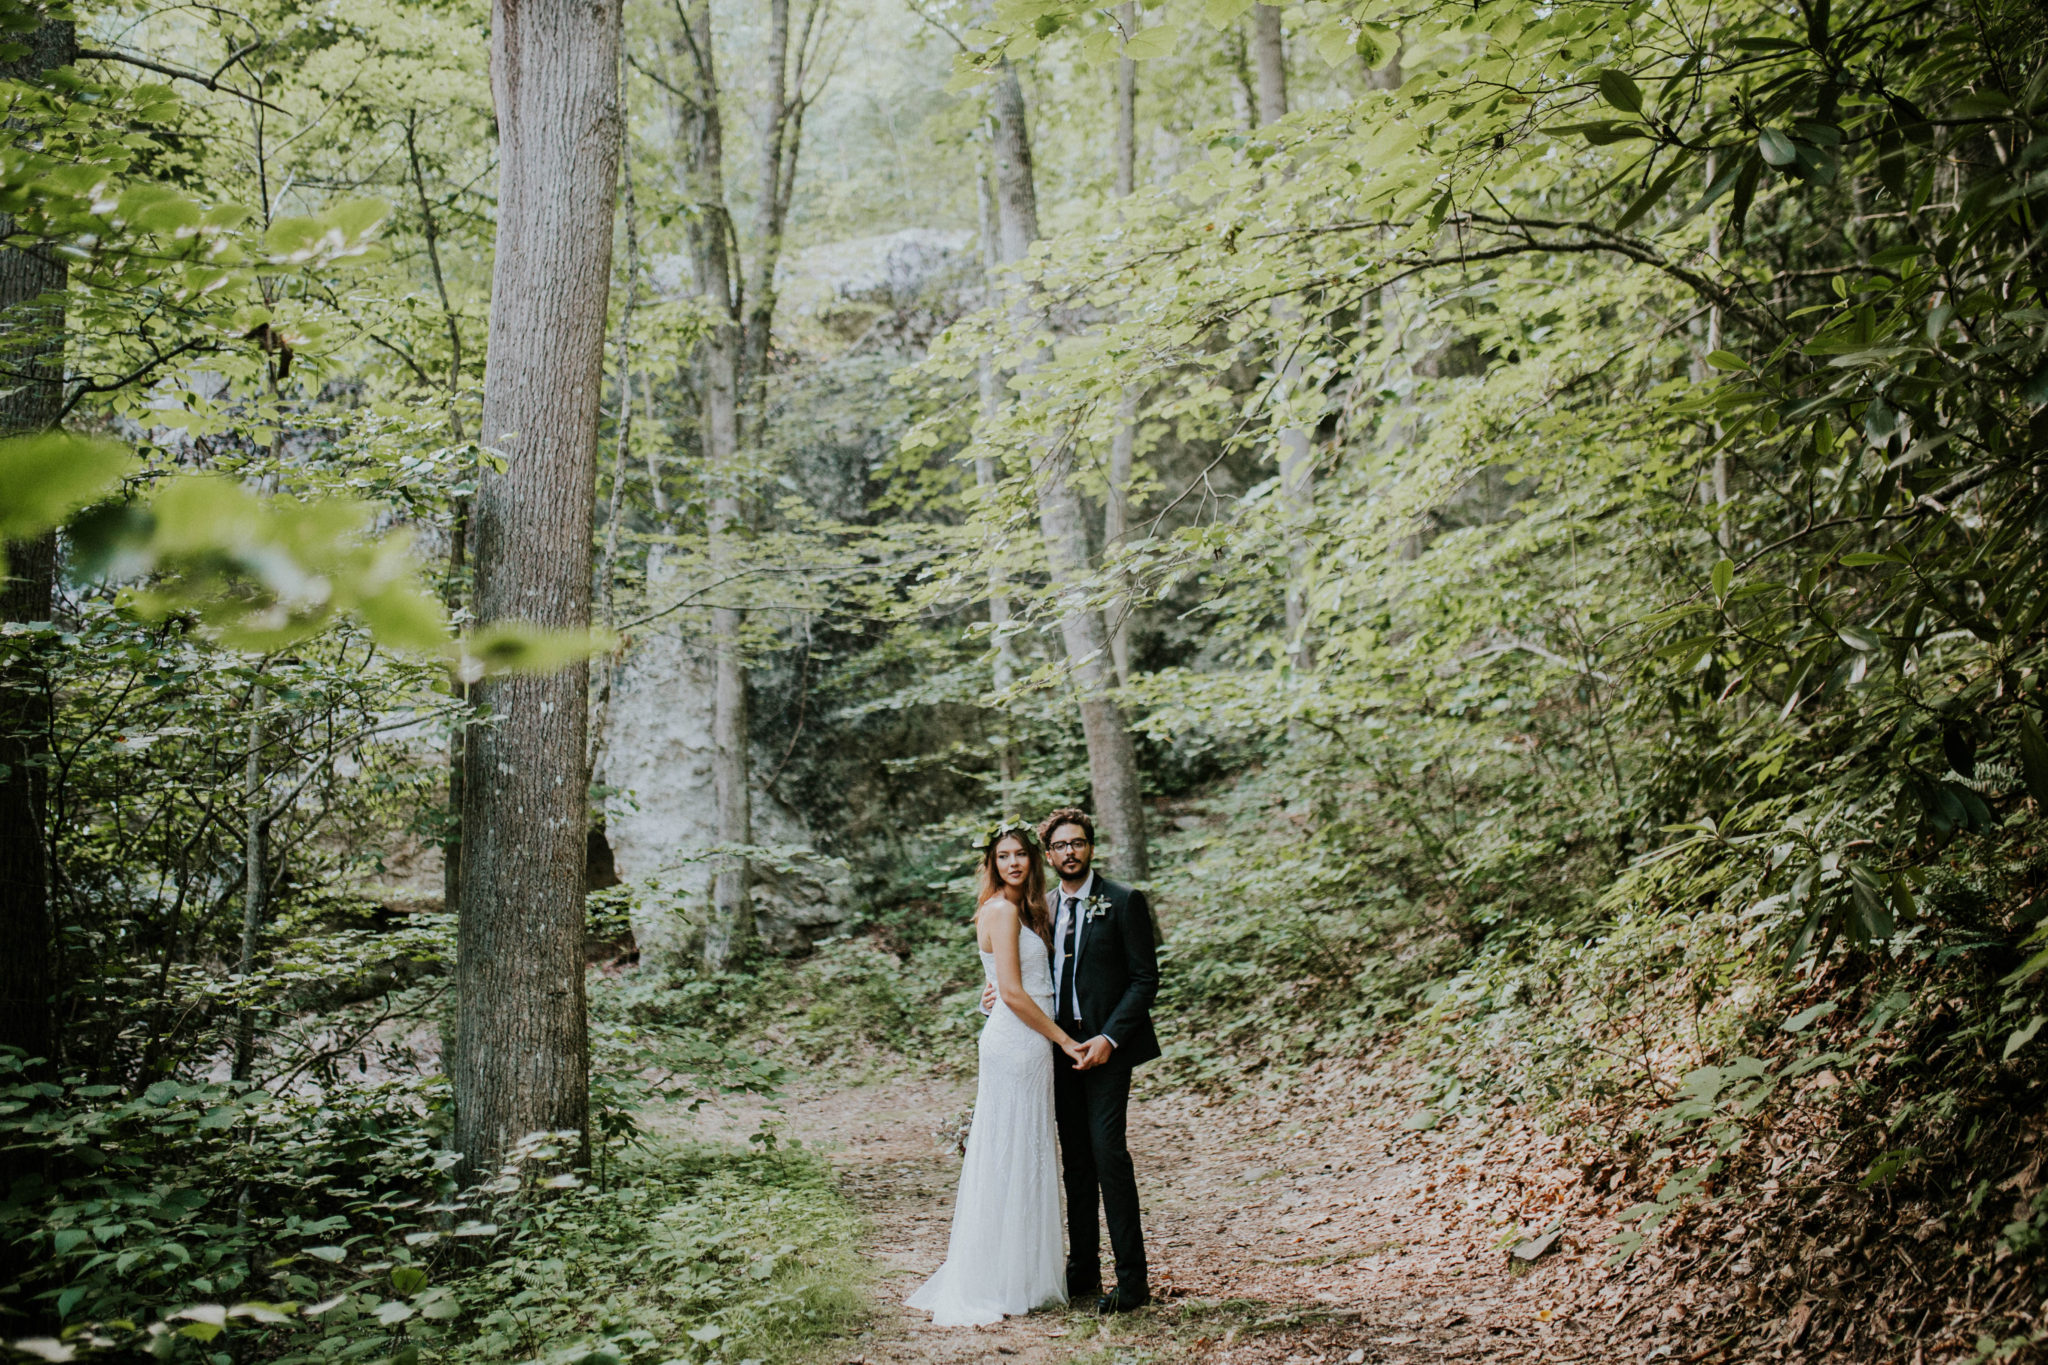 Anna & Jesus North Carolina Mountain Wedding Photographer-685